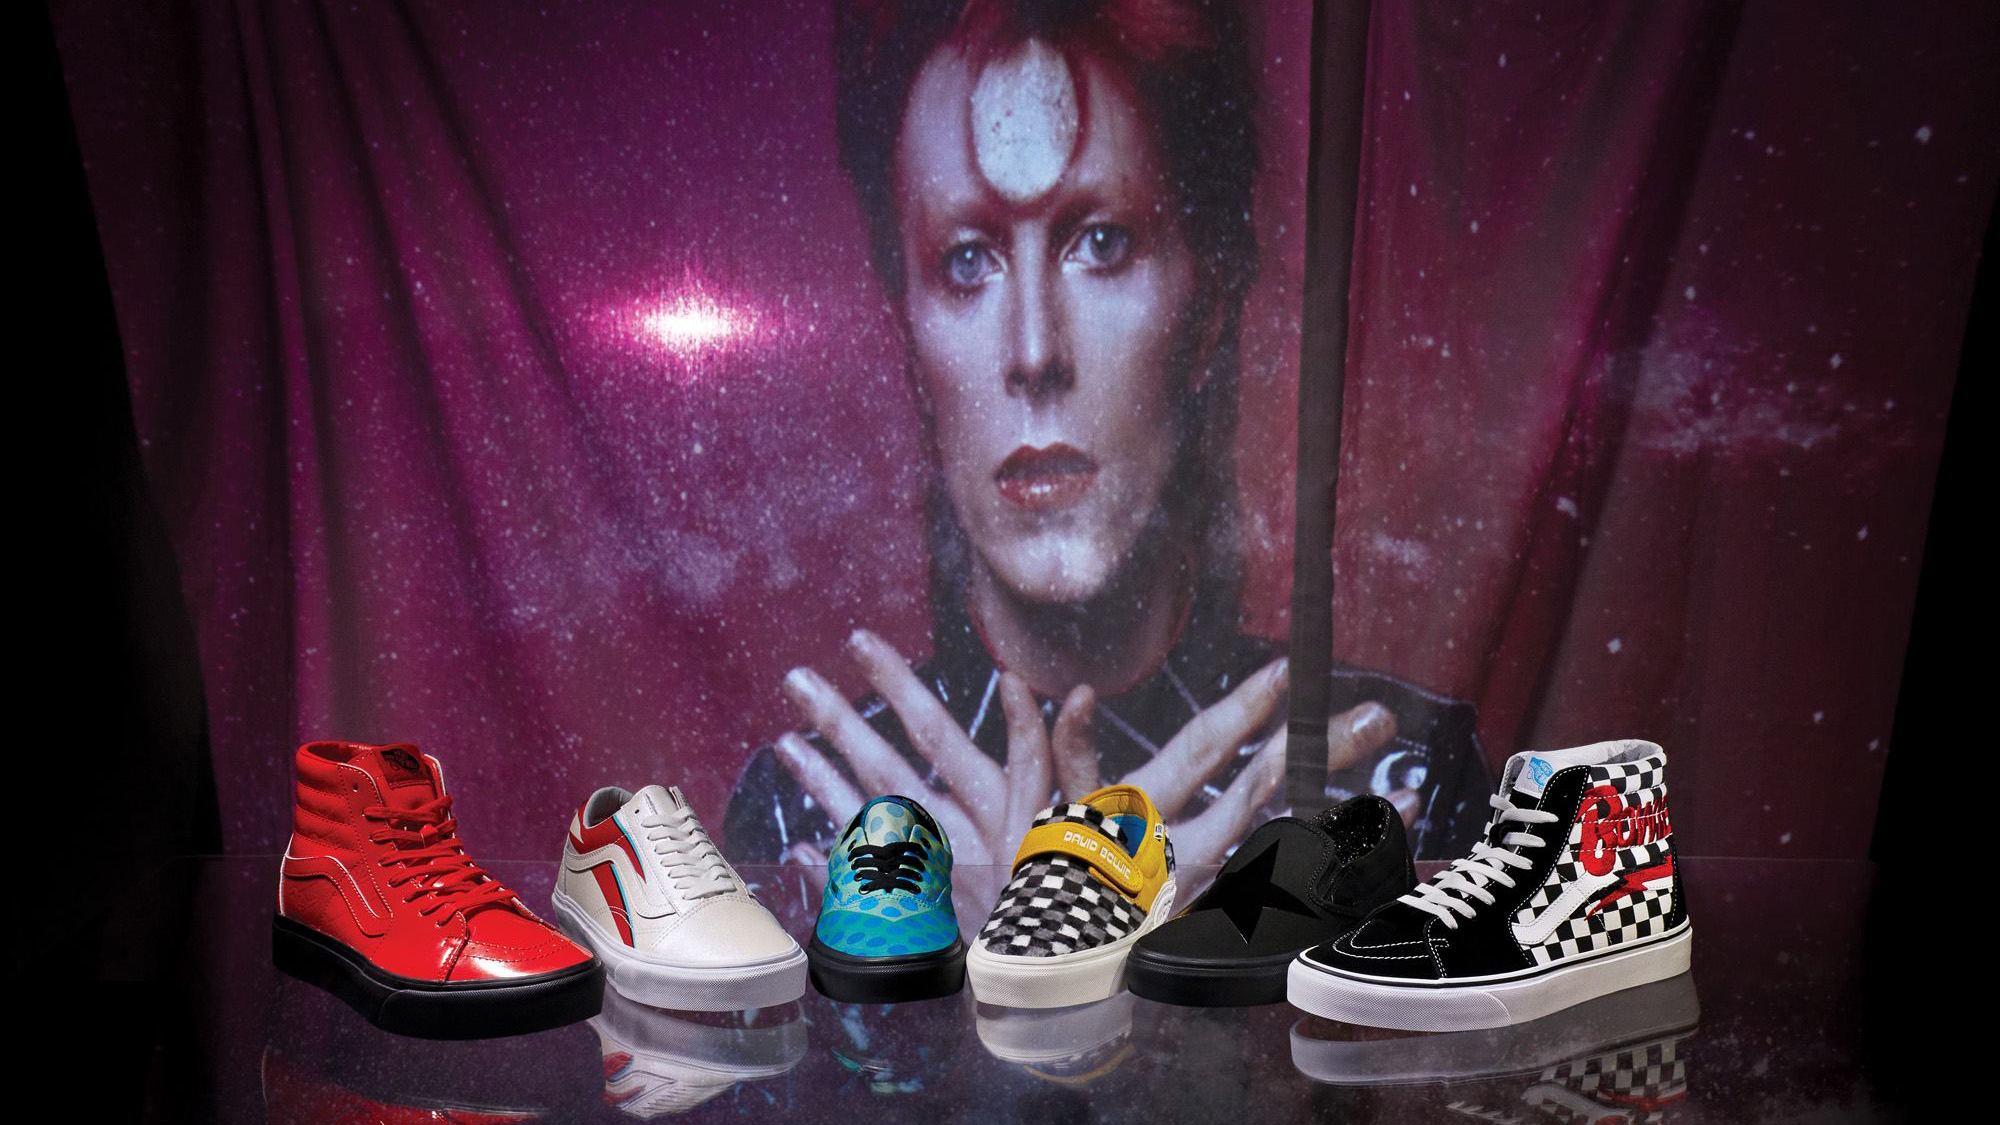 c4c1b39092 Vans releases David Bowie-inspired collection - CNN Style